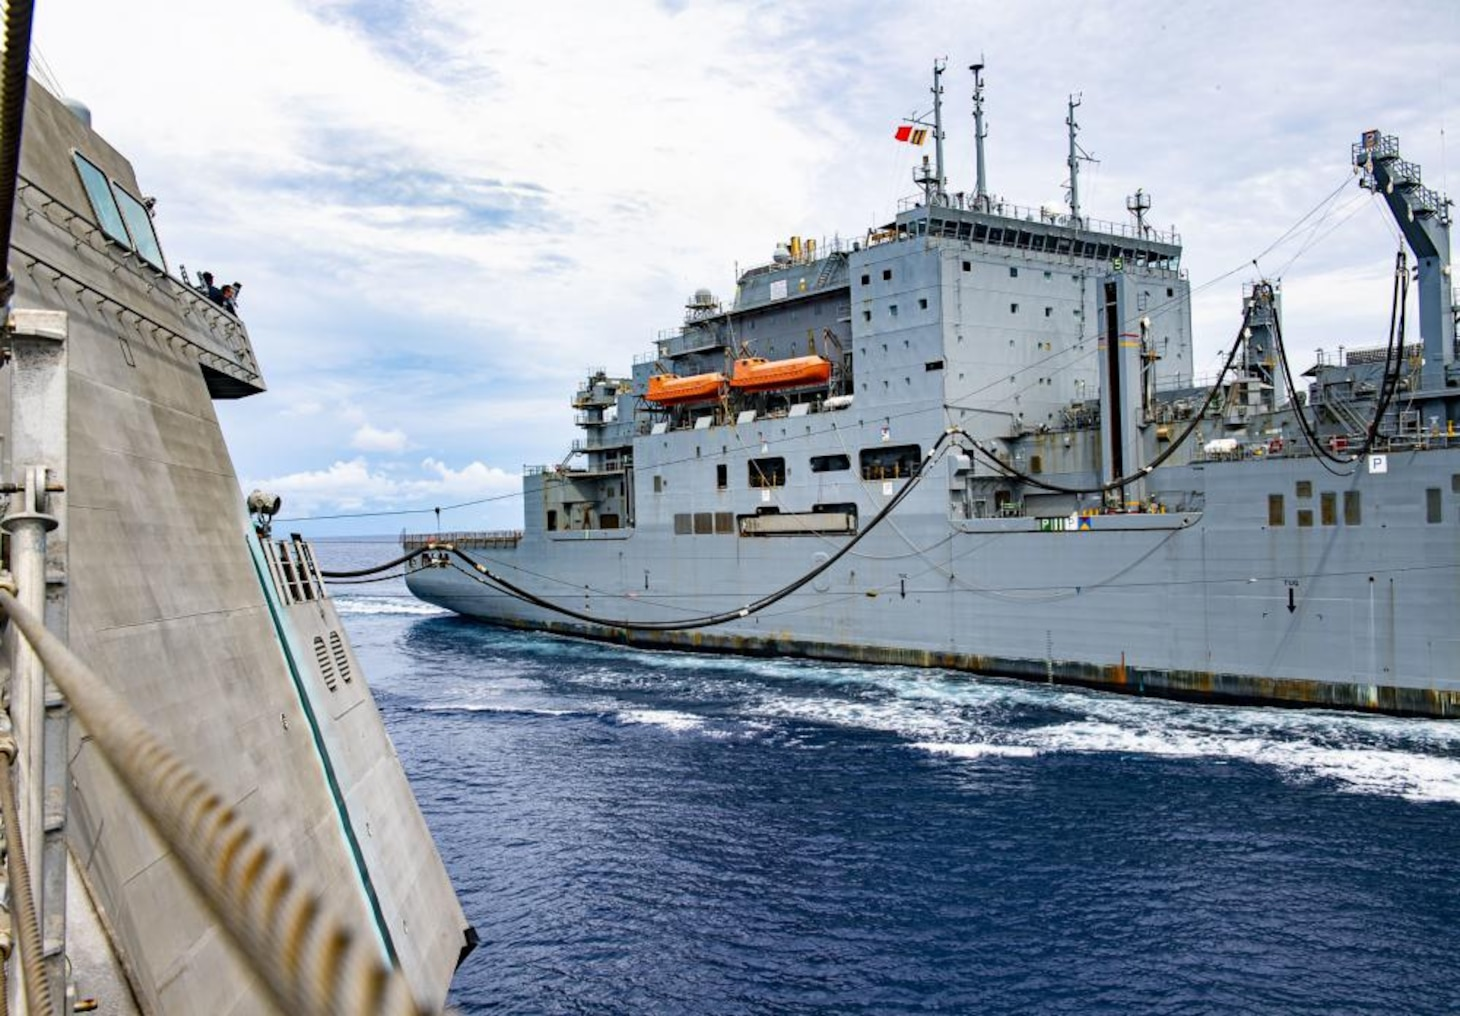 USS Tulsa (LCS 16) Sails In The South China Sea [Image 2 of 2]